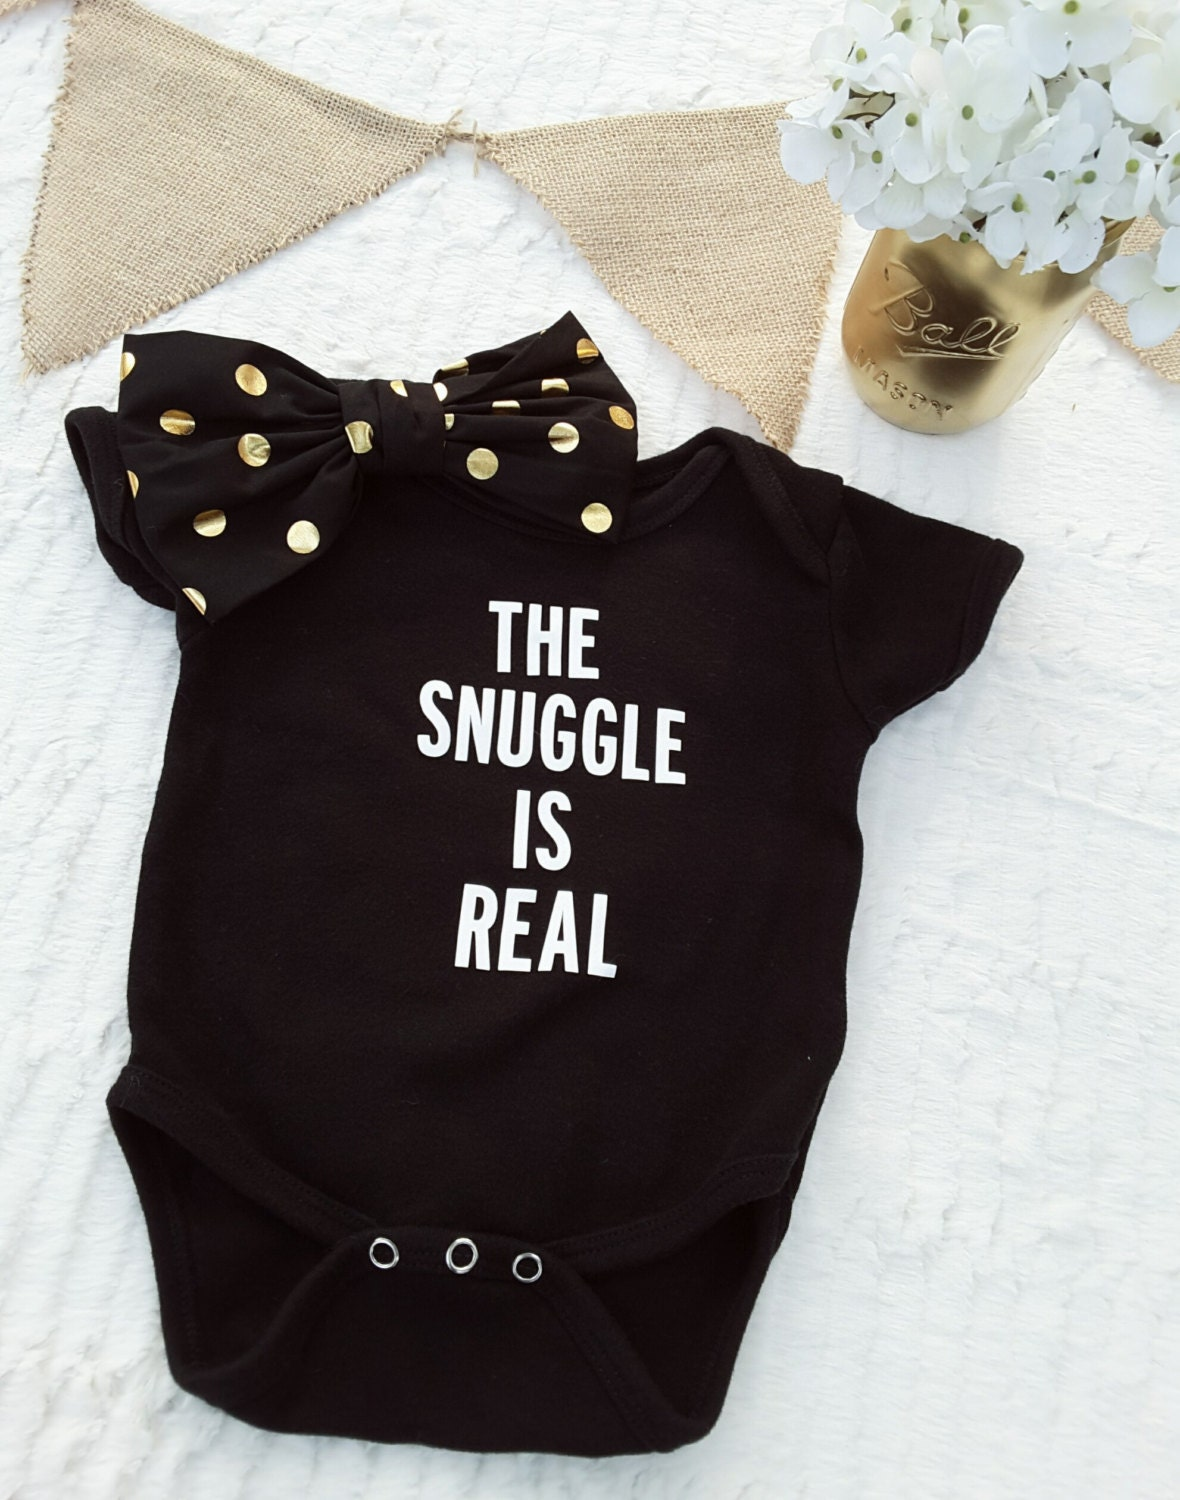 The Snuggle is Real esie Baby Clothes Uni Baby esie